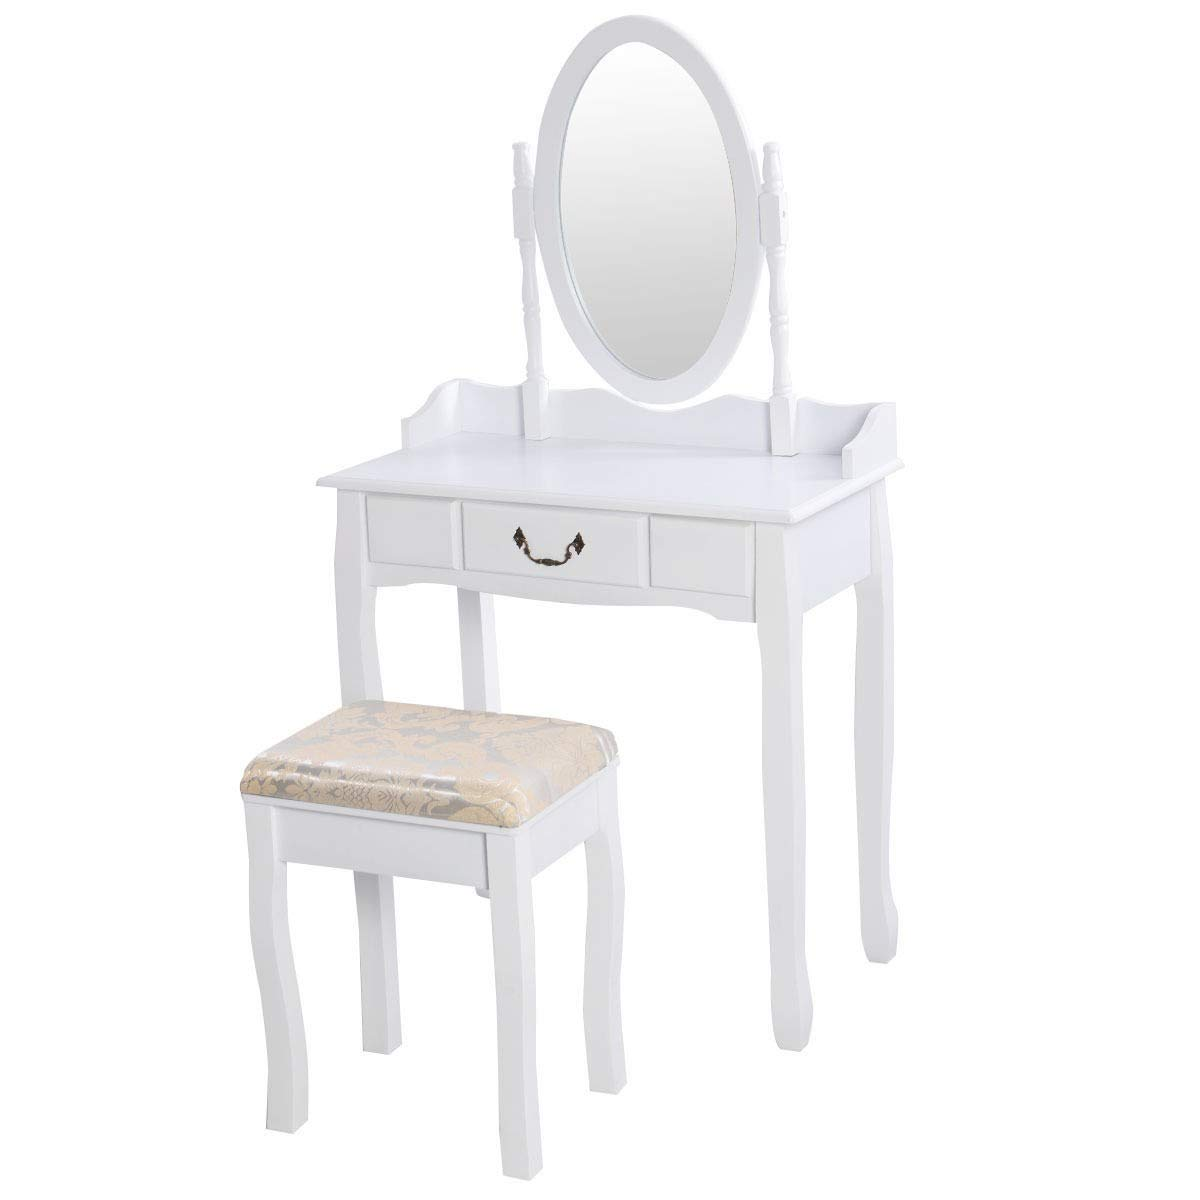 USA_Best_Seller New Chic White Vanity Makeup Dressing Table with 360 Degrees Rotating Mirror Sturdy and Durable Home Bedroom Furniture Long Lasting Spacious Large Table Top